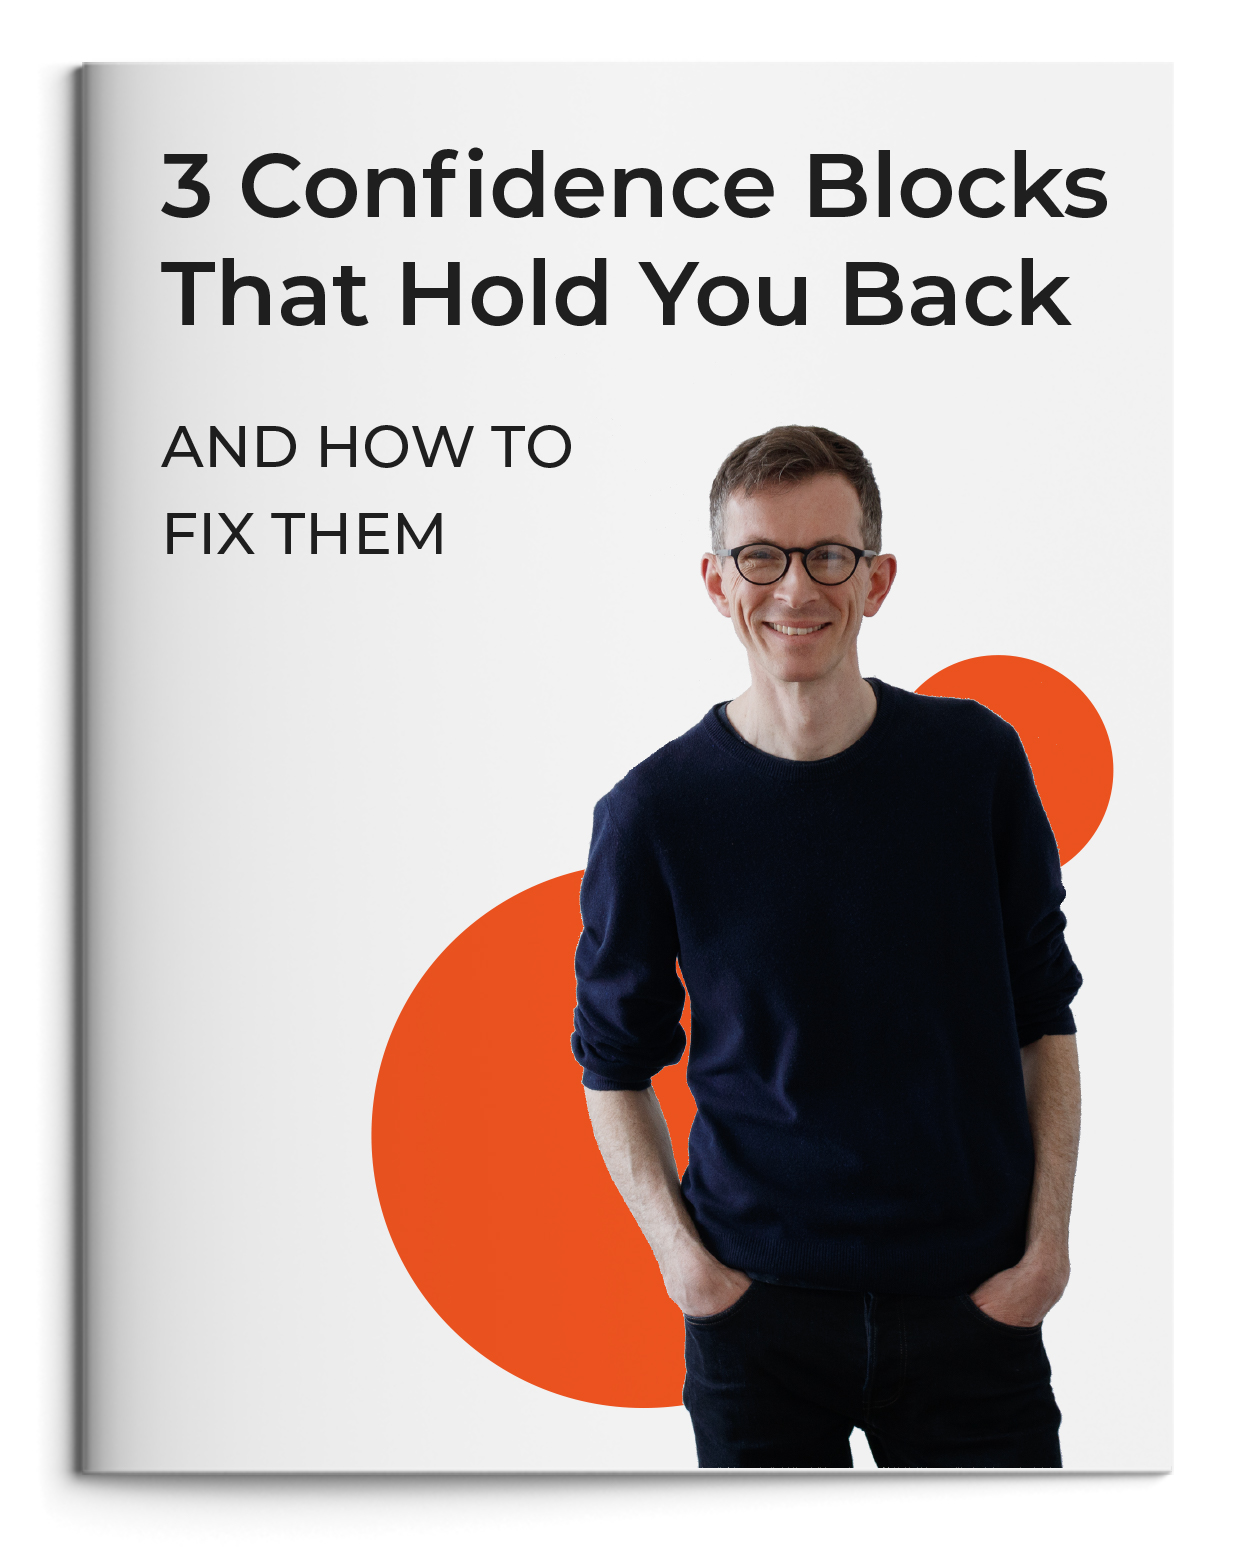 3 confidence blocks that hold you back guide.